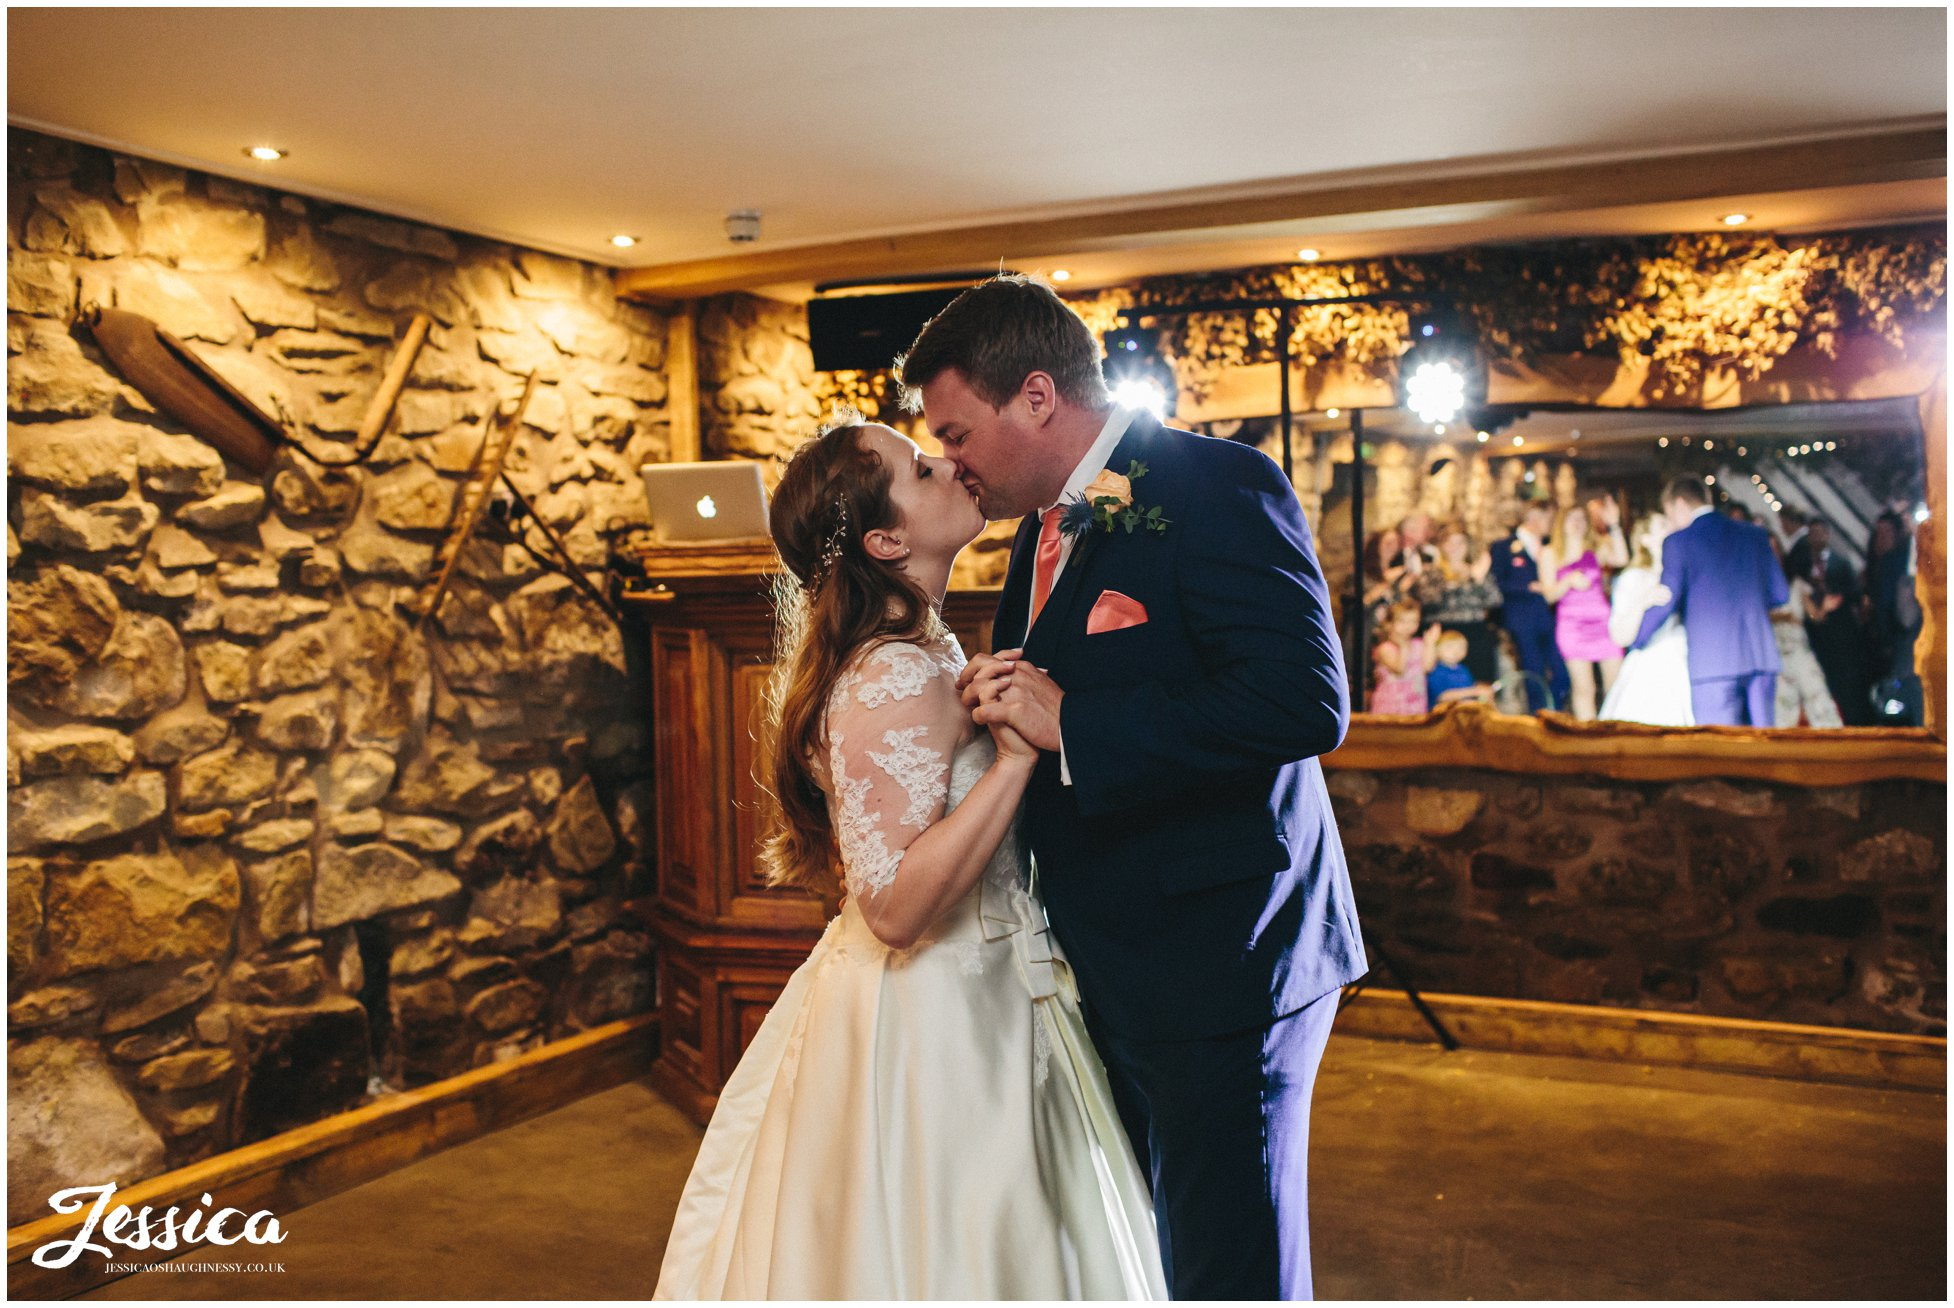 bride & groom kiss during their first dance in the old barn